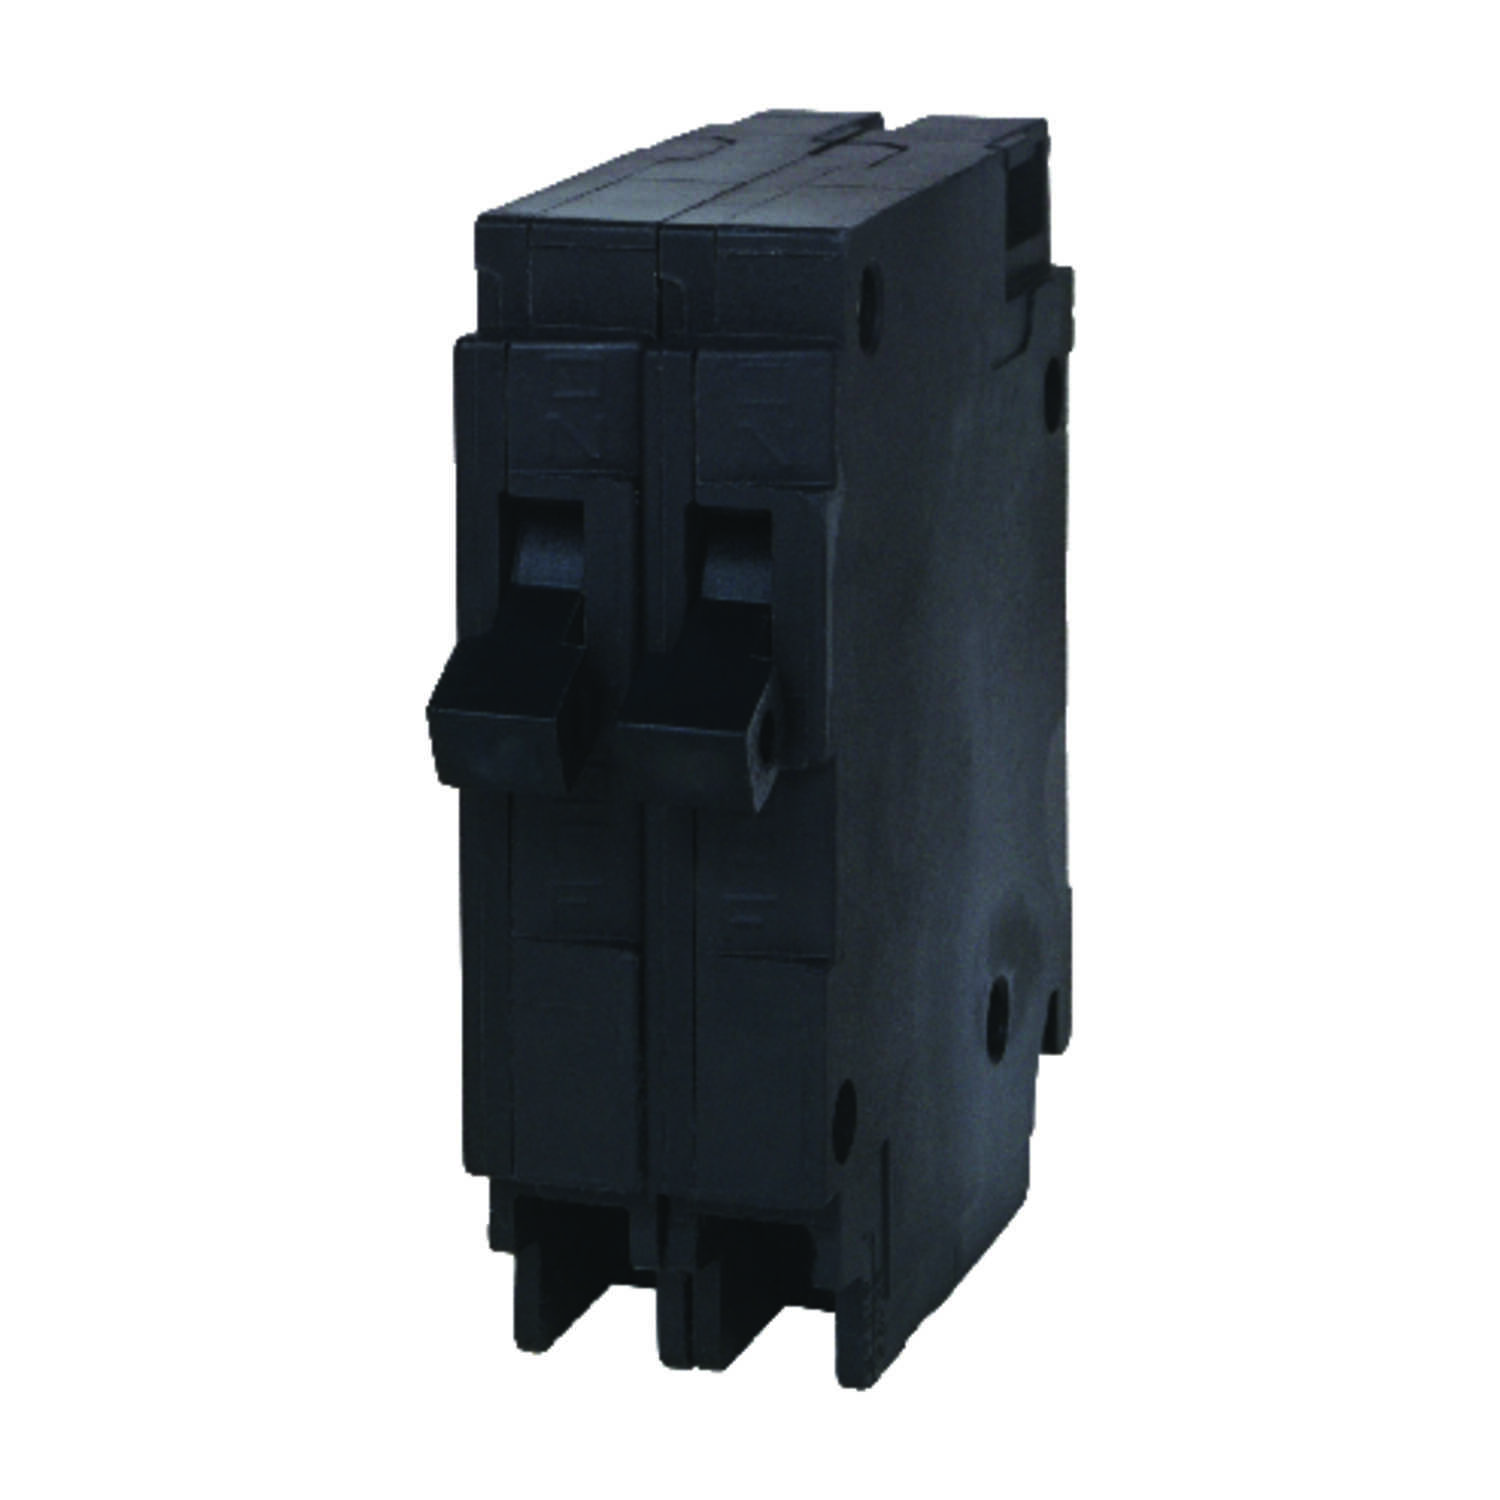 Murray  HomeLine  15/15 amps Tandem/Single Pole  1  Circuit Breaker